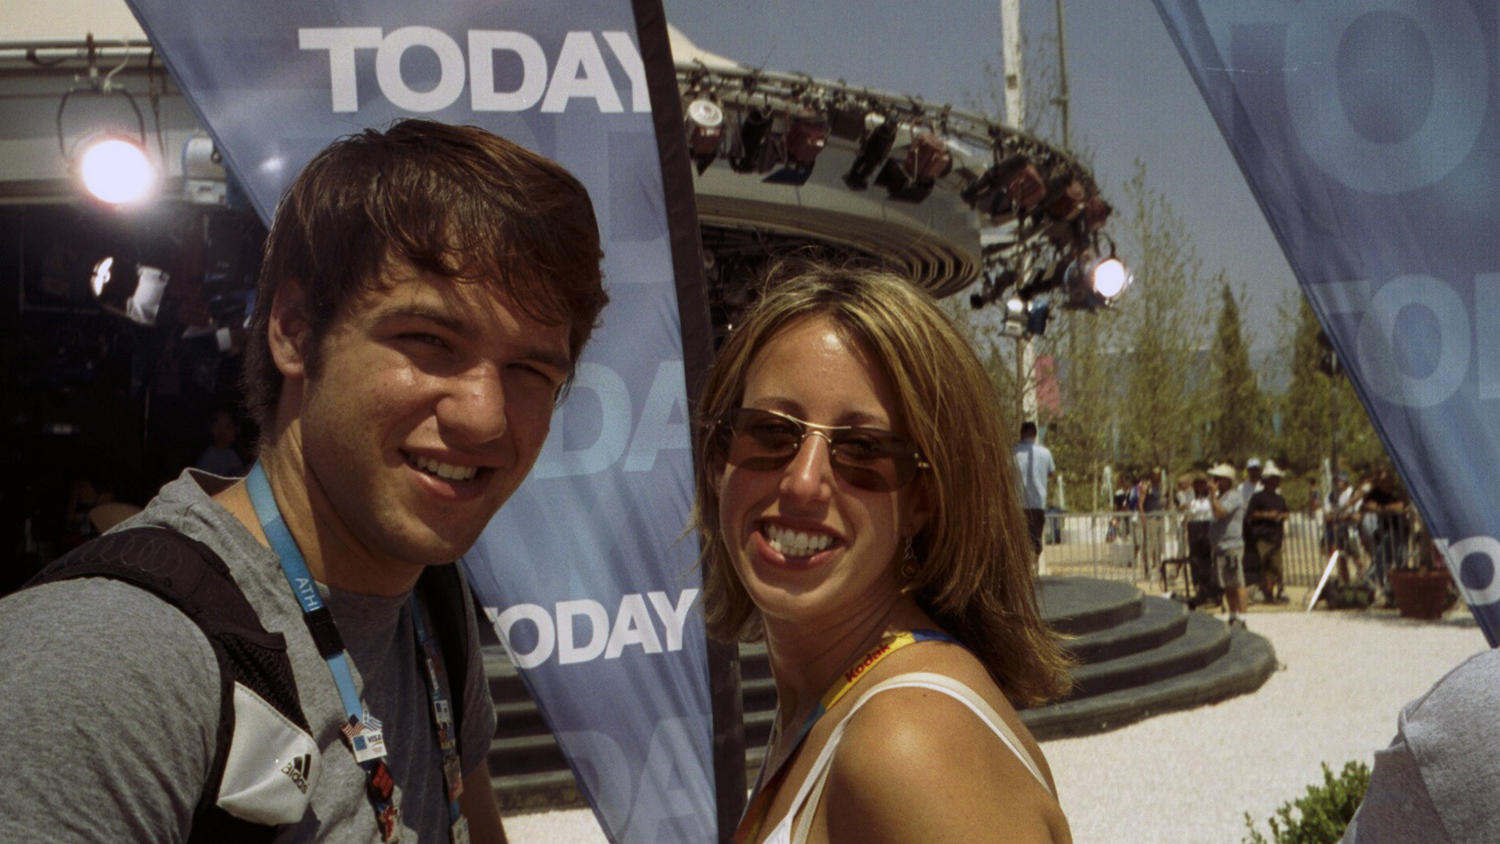 Today Show Athens 2004.jpg